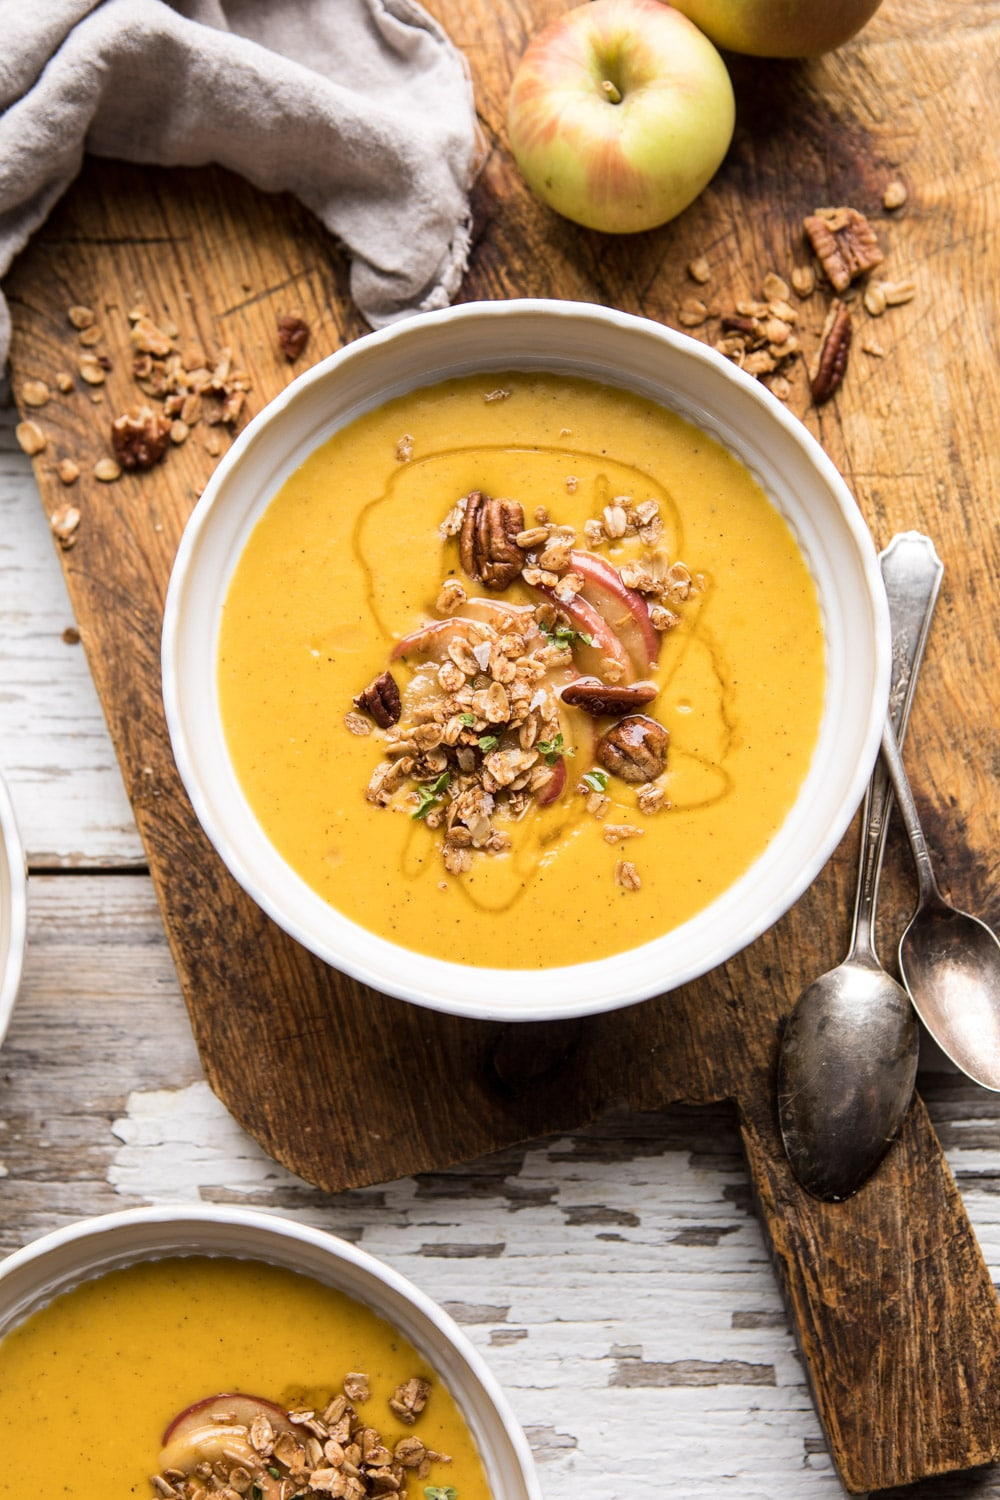 Cheddar Apple Butternut Squash Soup with Cinnamon Pecan Crumble